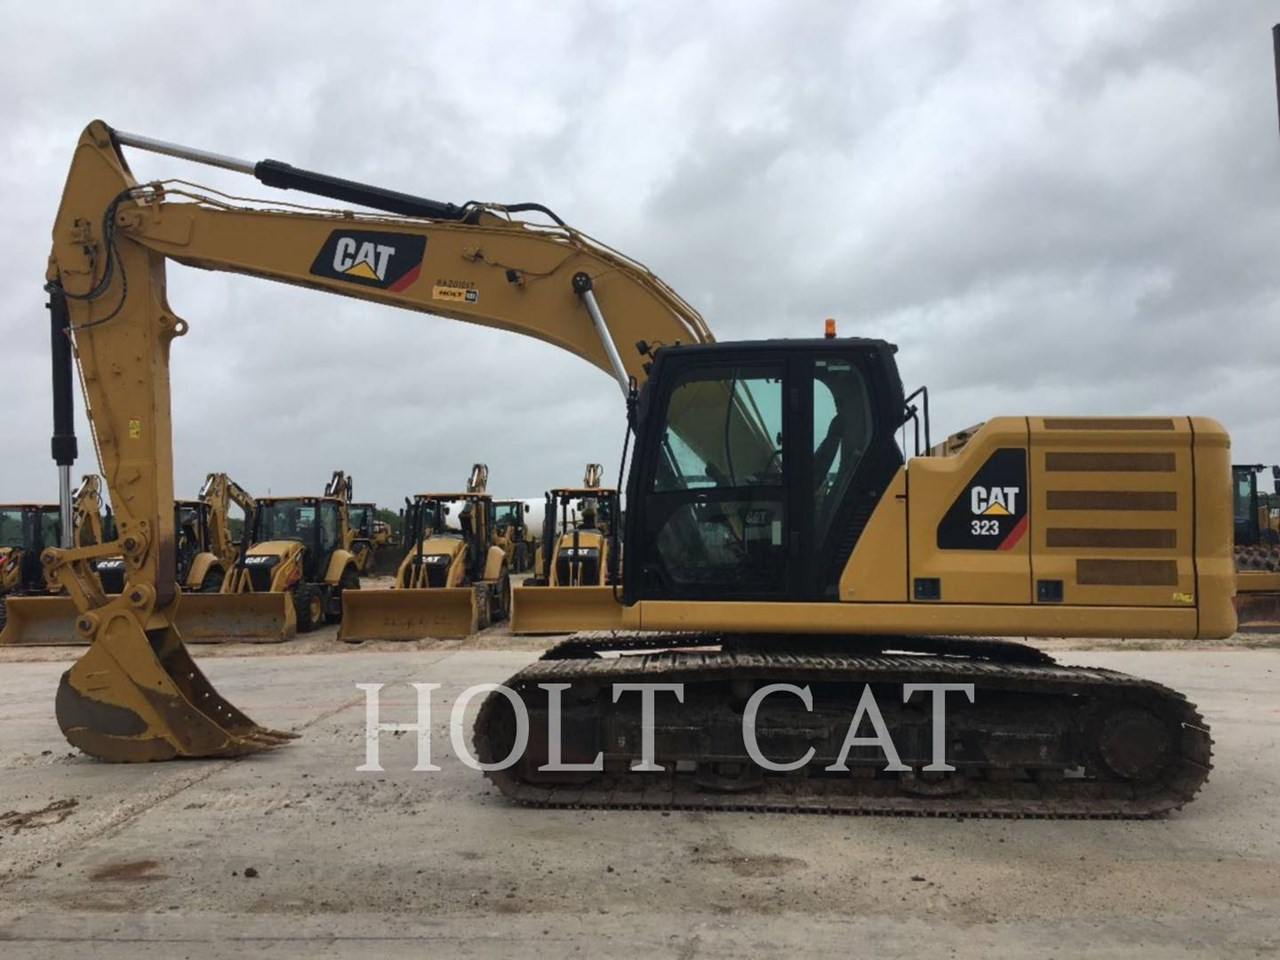 2018 Caterpillar 323 Image 1